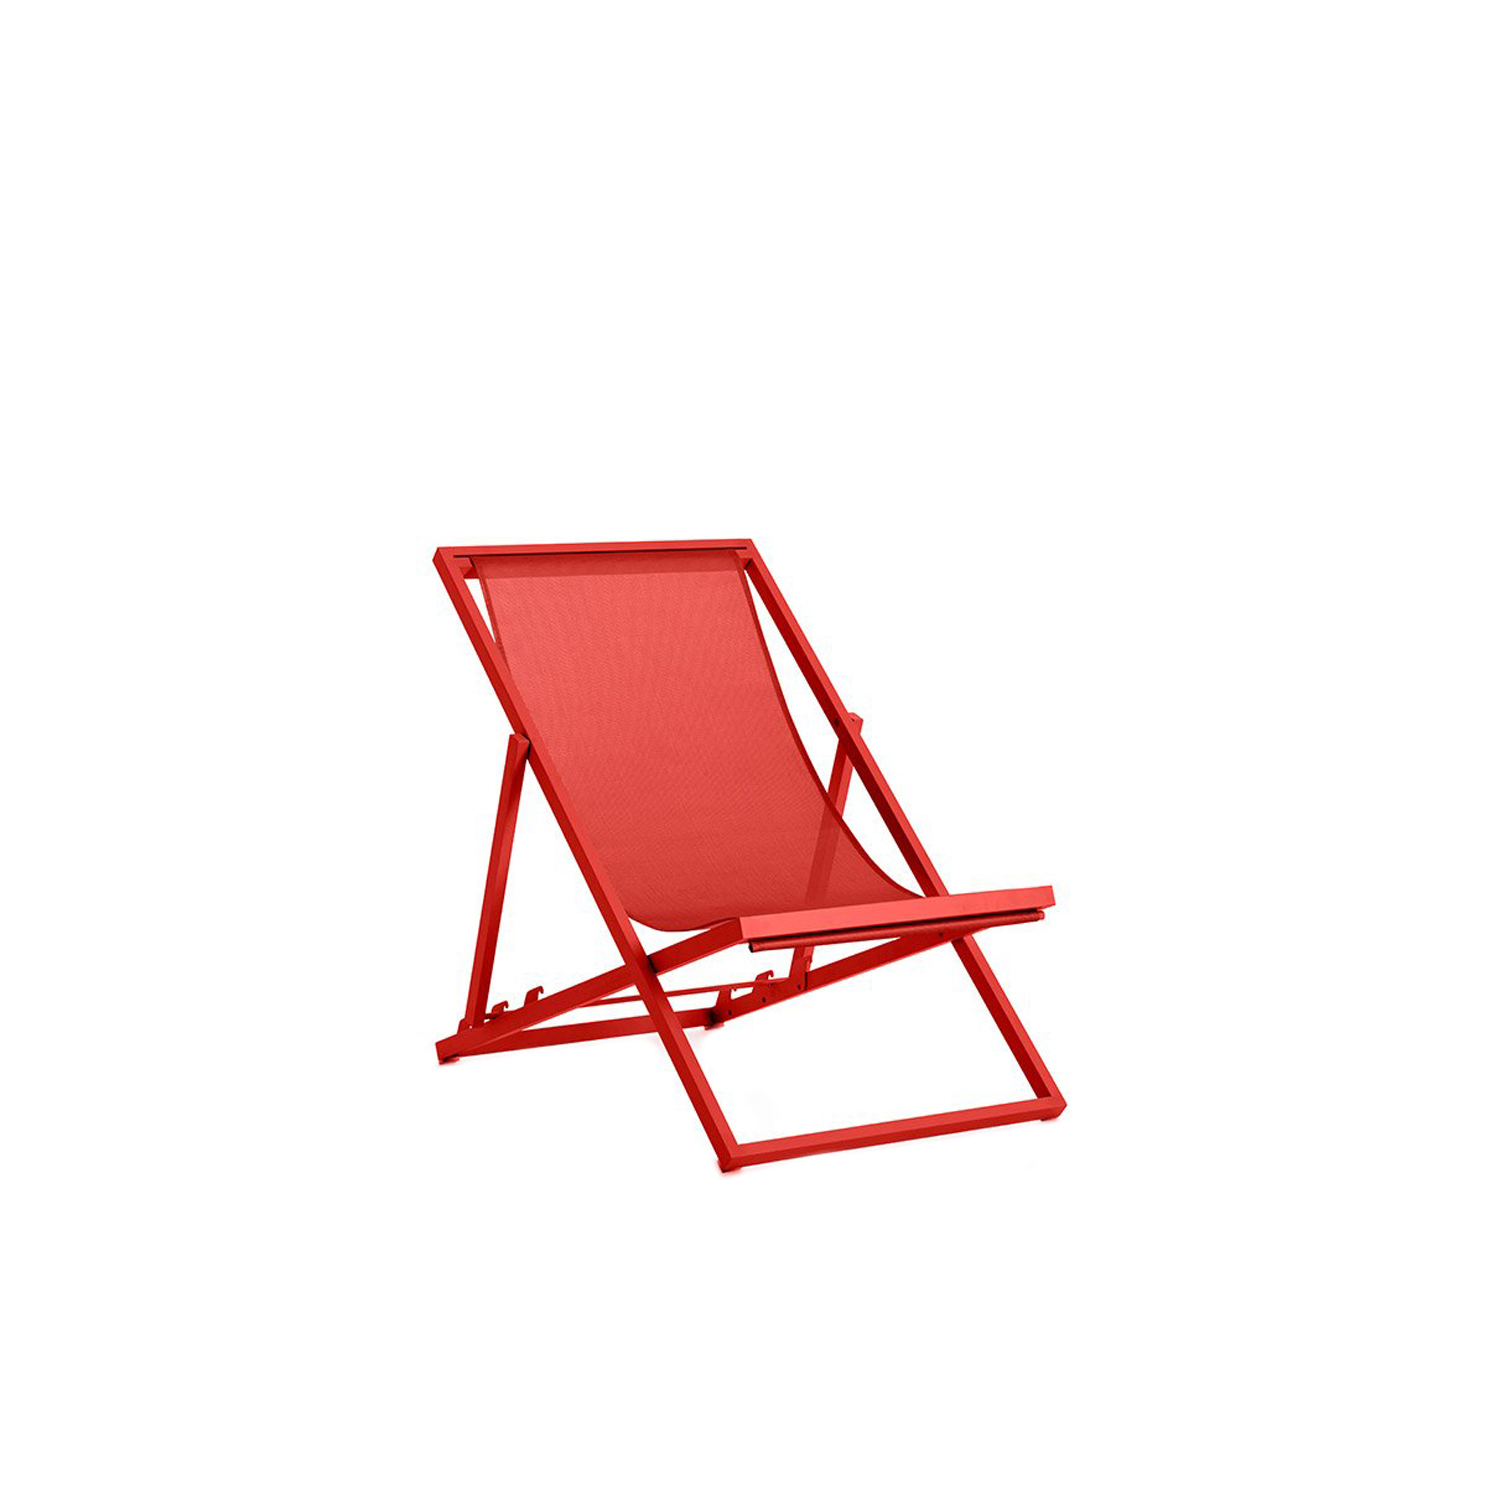 Picnic Deckchair - Picnic is an improved version of the traditional folding garden deckchair. With a lighter and more hard-wearing design making it easier to carry to the beach or the park, Picnic can also be left outside permanently in all weather conditions. It's the ideal companion for enjoying a day out in the open air, plus it can be used at home both indoors and outdoors as it's foldable and very easy to carry around.